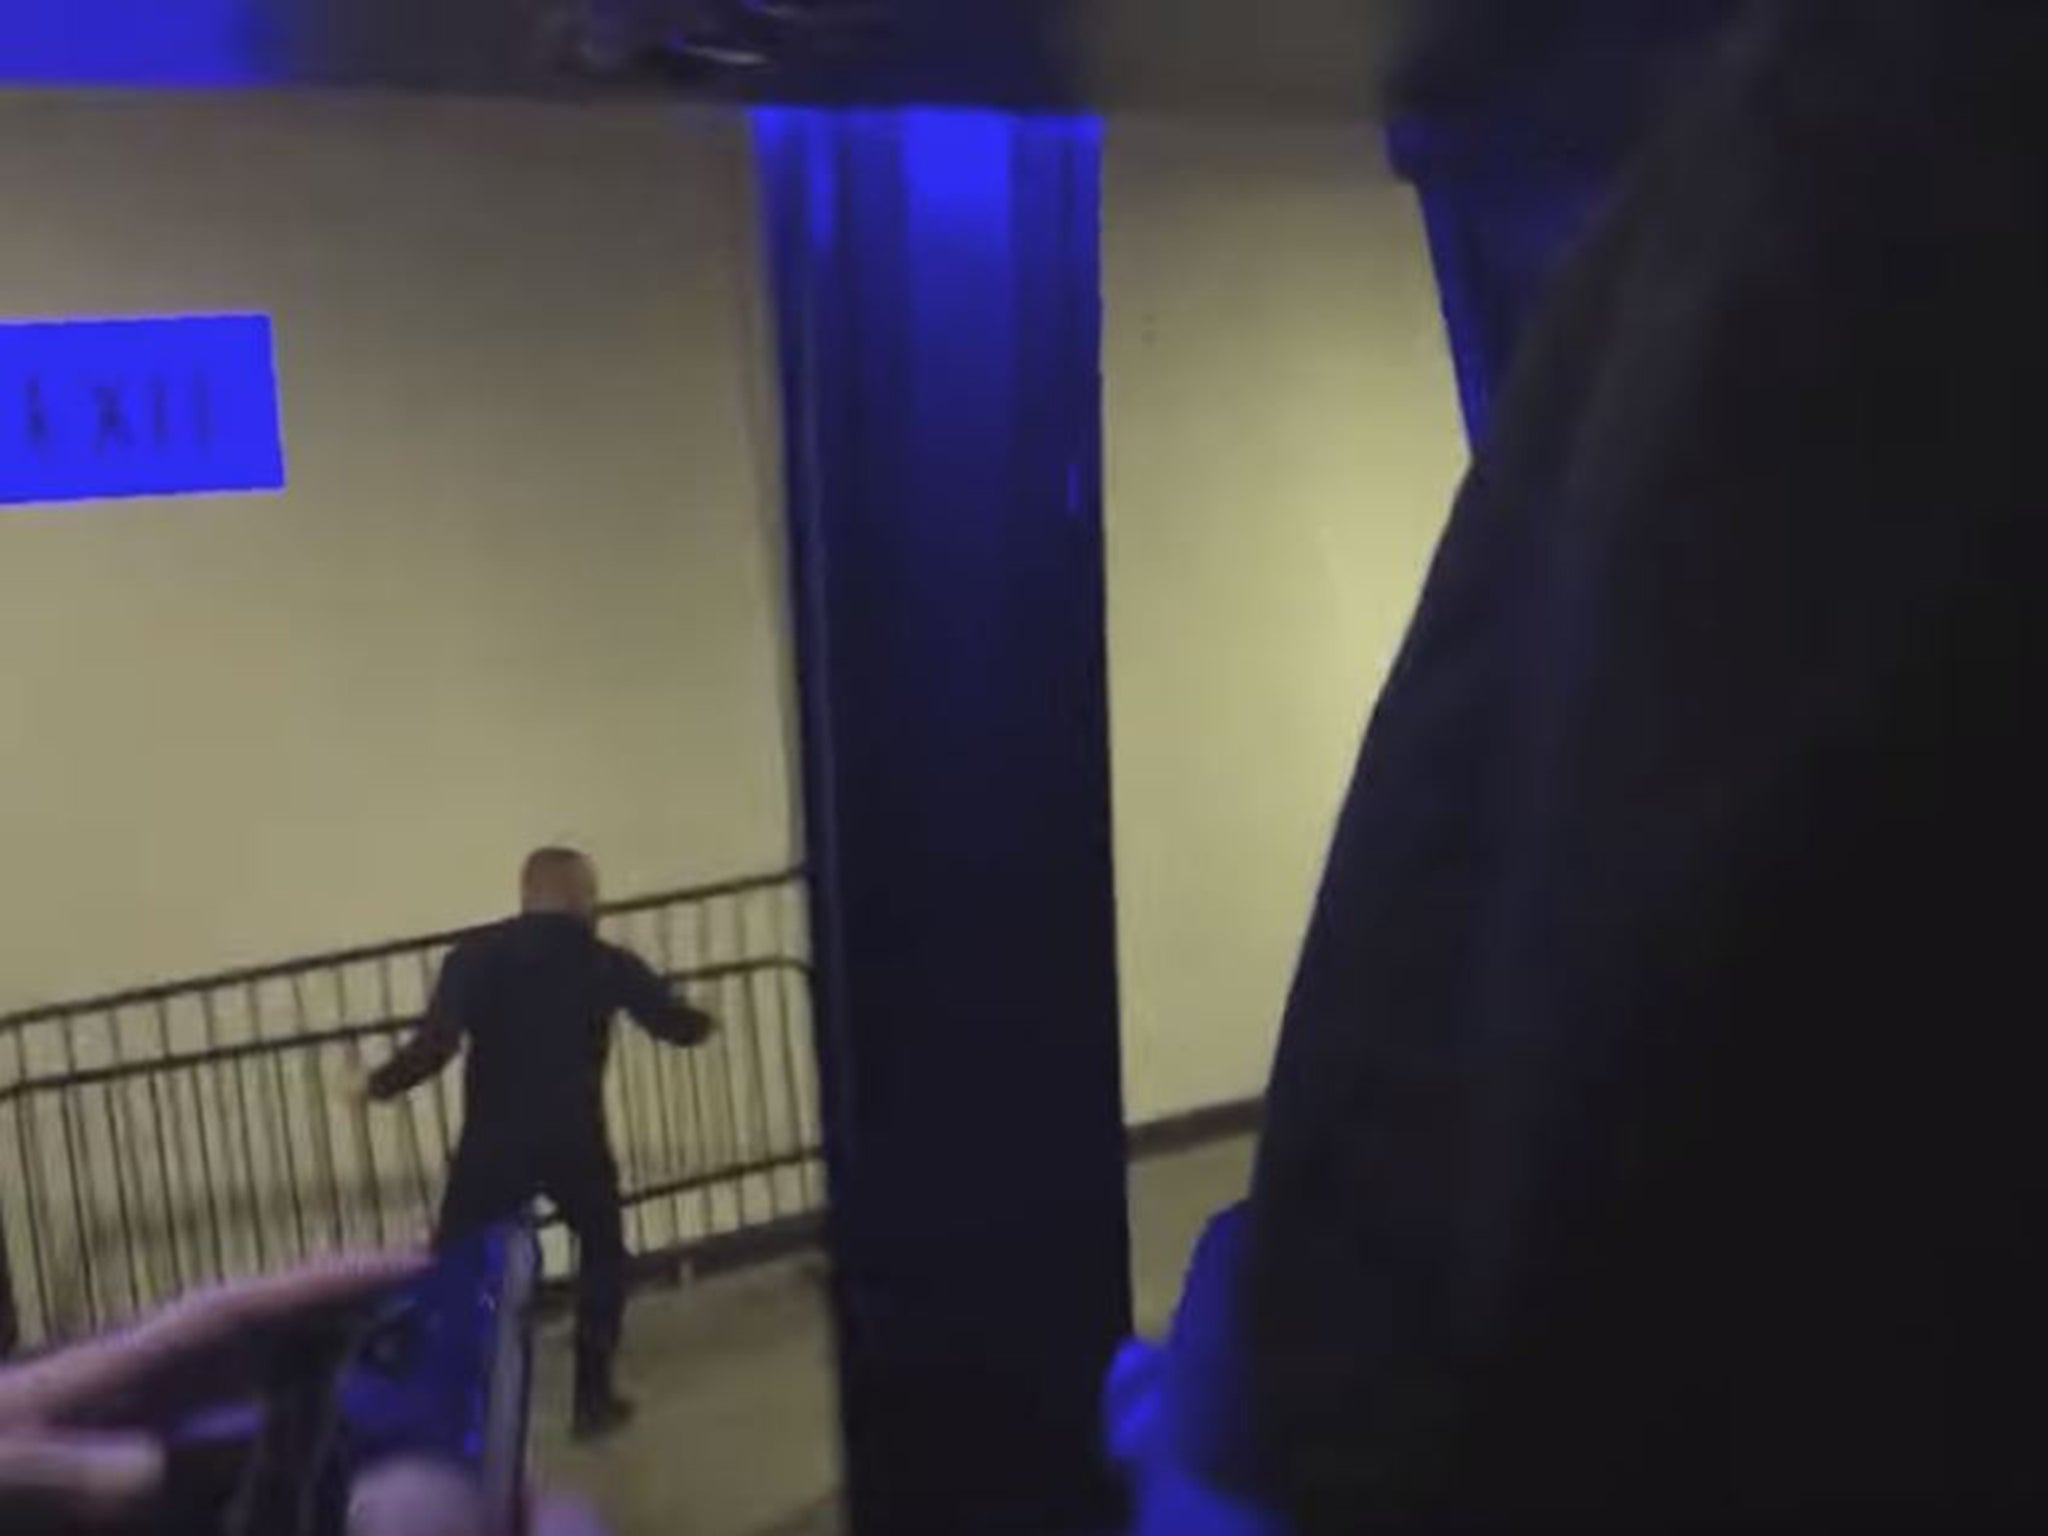 Conor mcgregor arrest new video footage shows irish stars violent mcgregor then picks up a security barrier but is stopped from throwing it youtubeufc reheart Choice Image